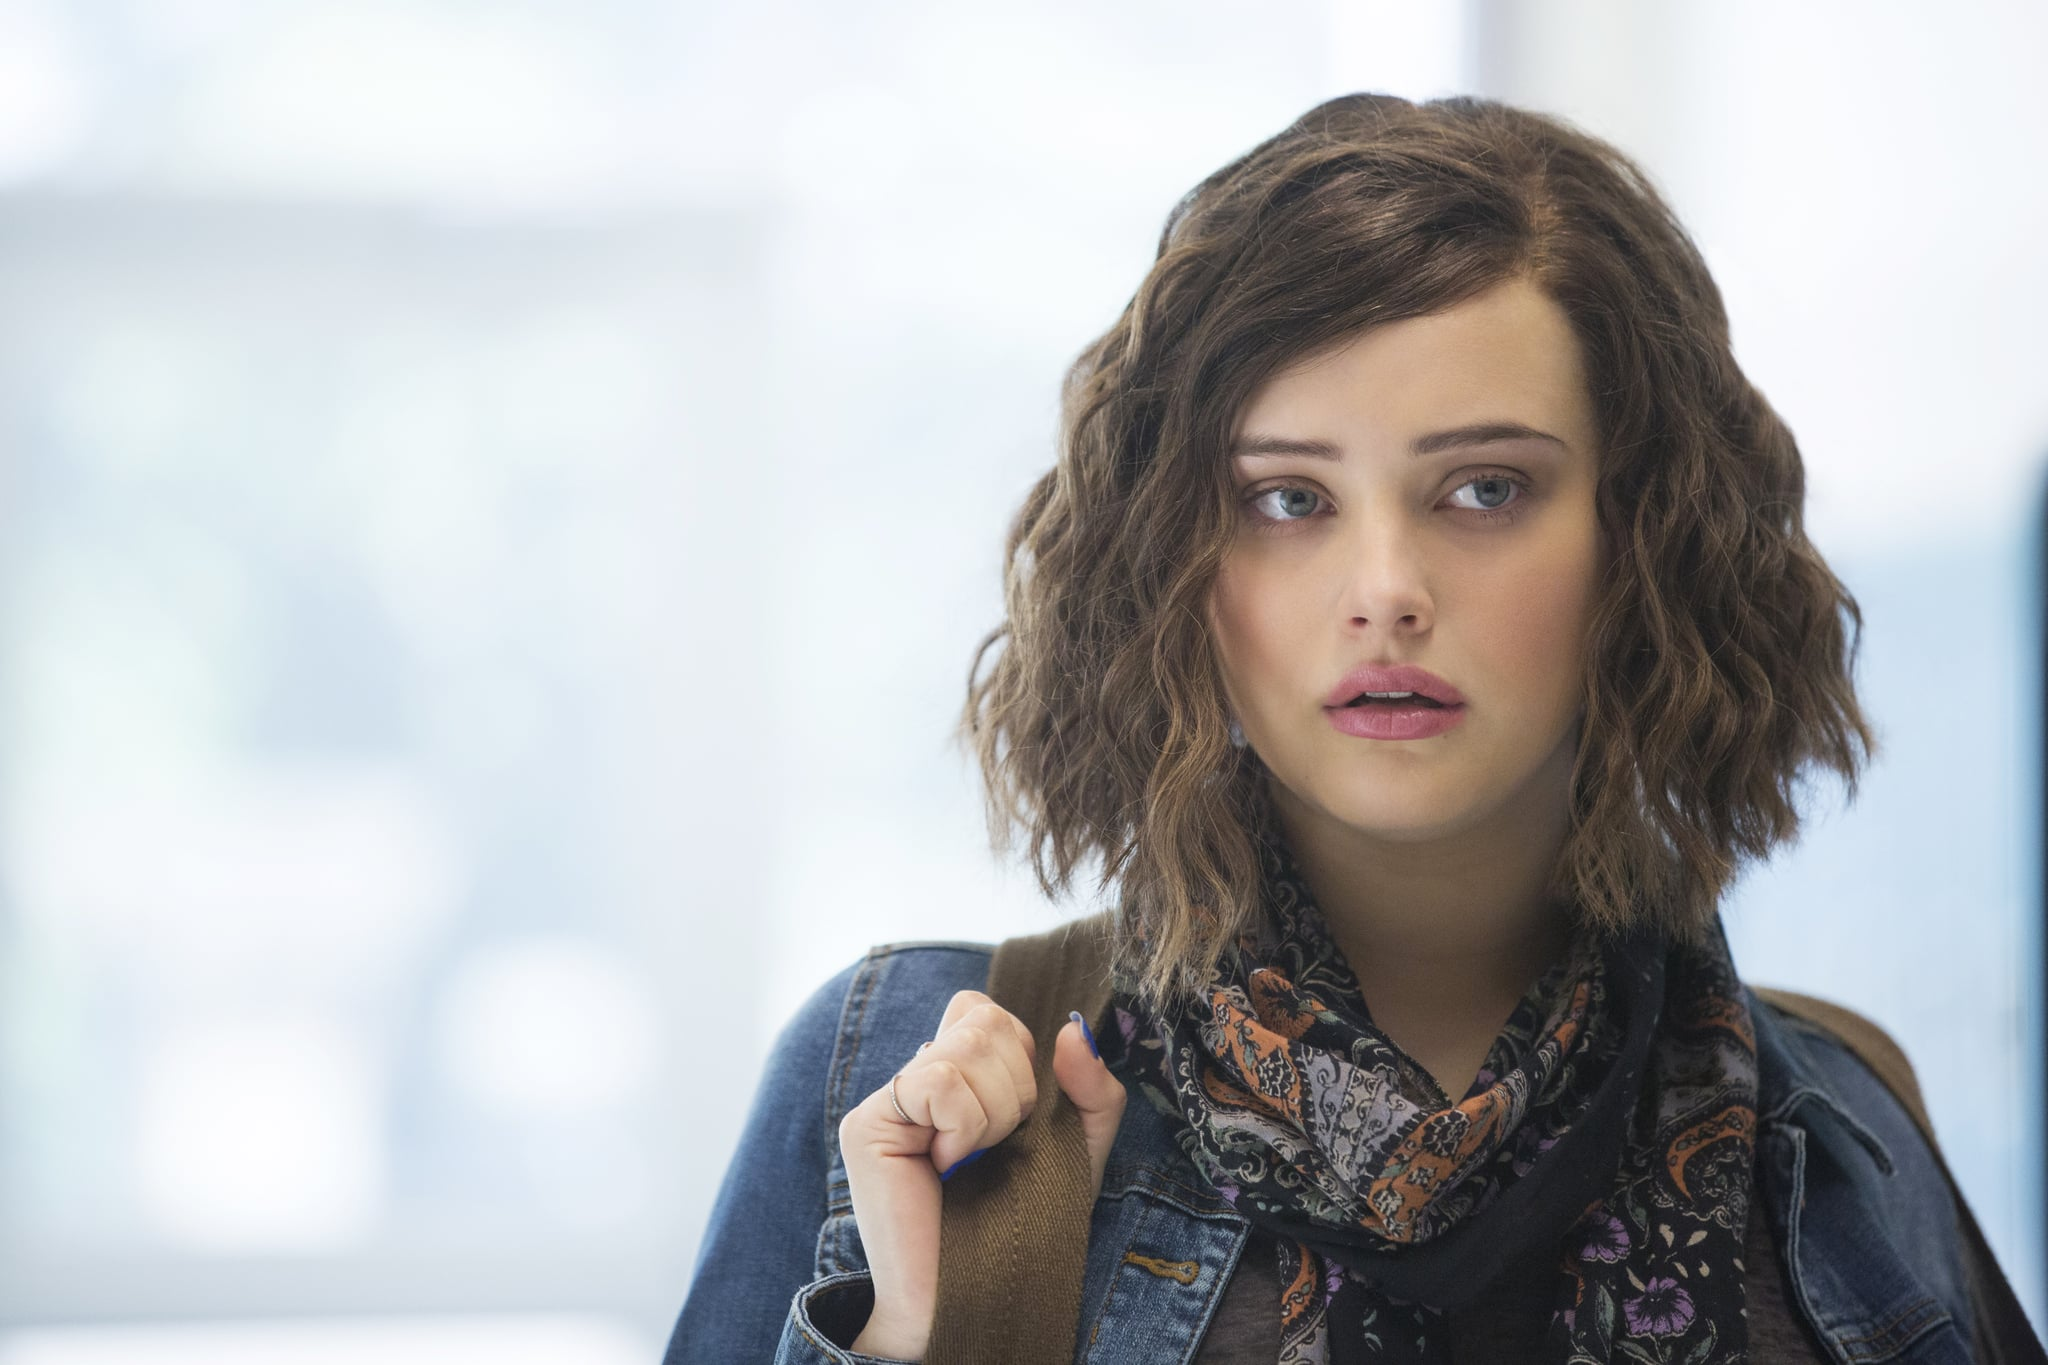 Quotes From Thirteen Reasons Why Enchanting Katherine Langford's Quotes About 13 Reasons Why Season 2